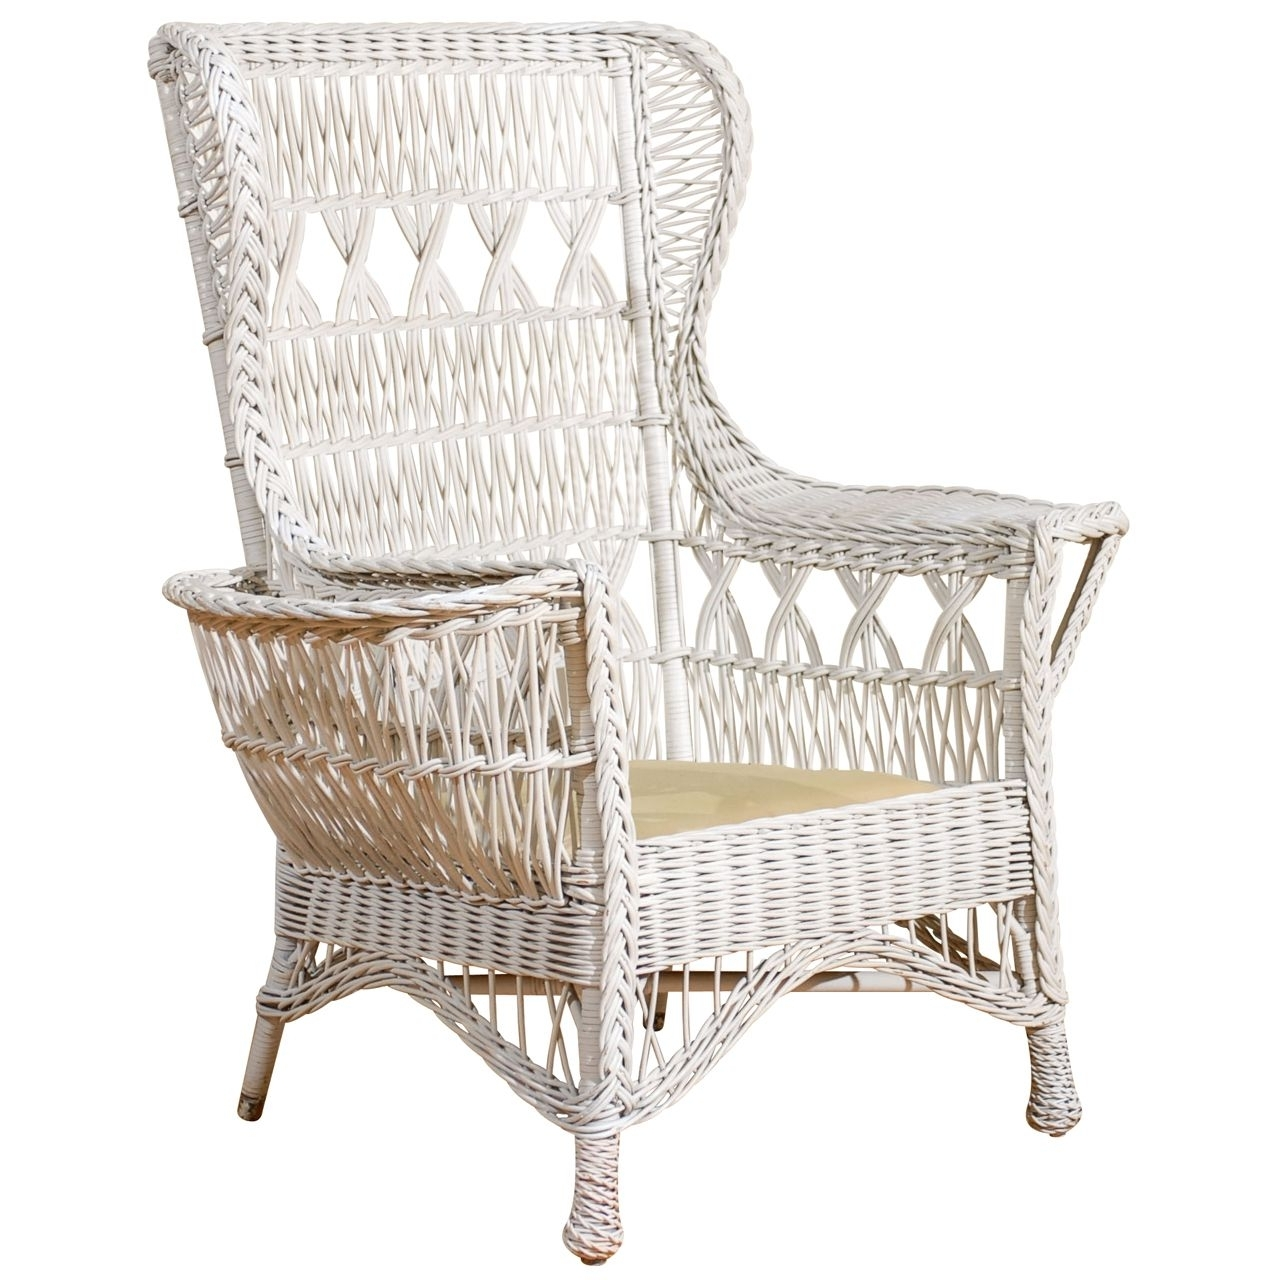 Wicker With Regard To 2017 Wicker Rocking Chair With Magazine Holder (View 5 of 15)